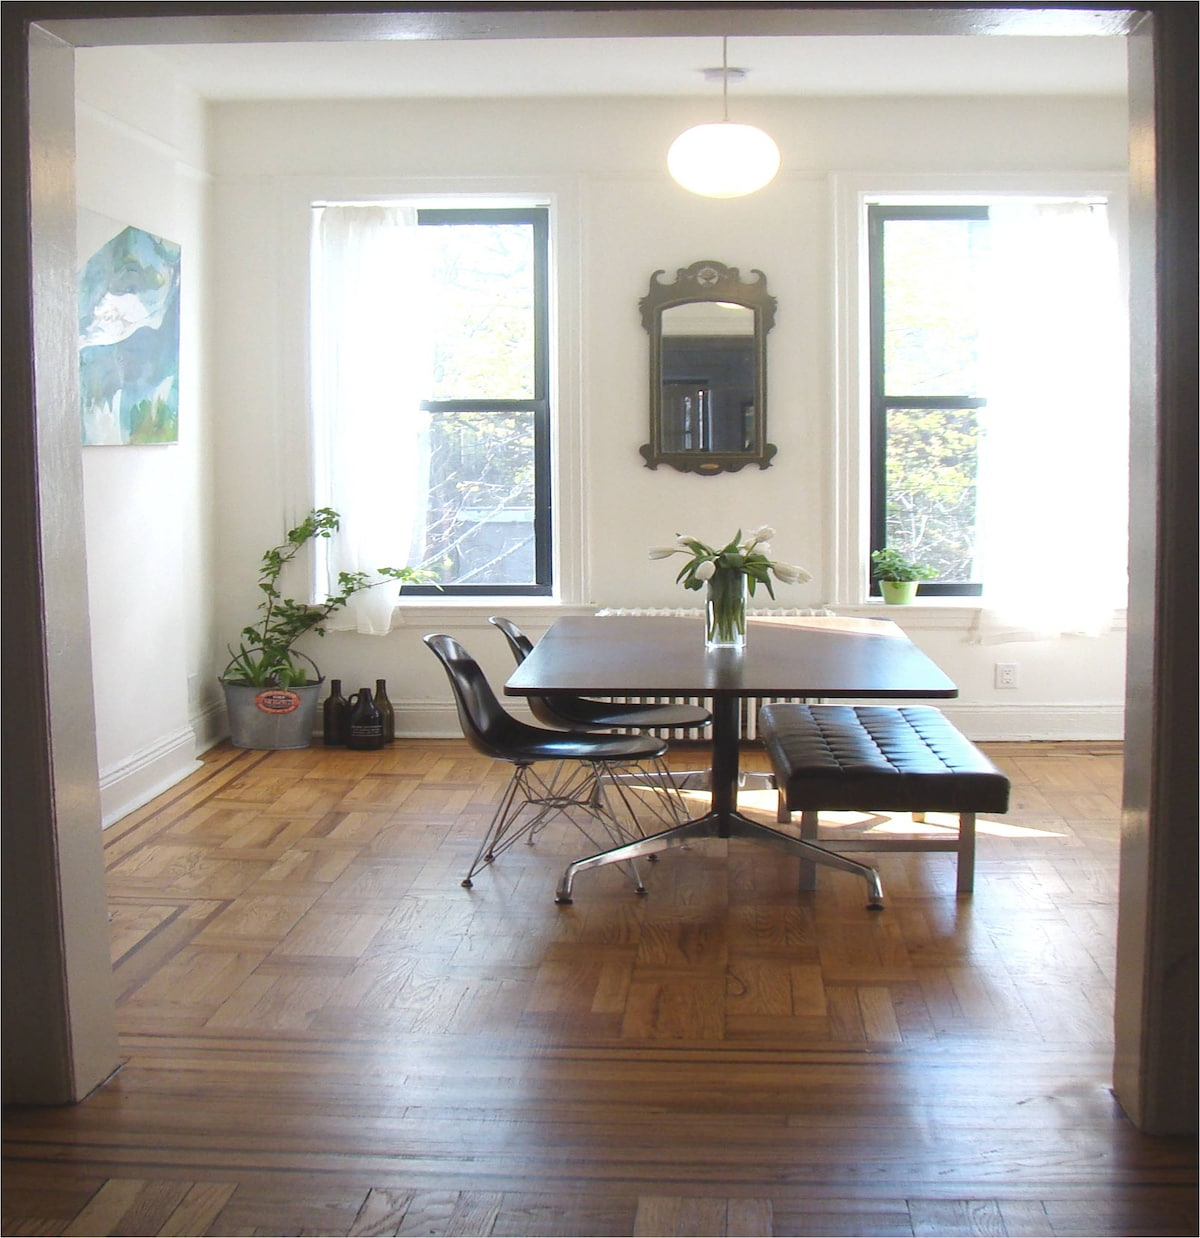 Sun-filled dining room with mid-century designer furniture